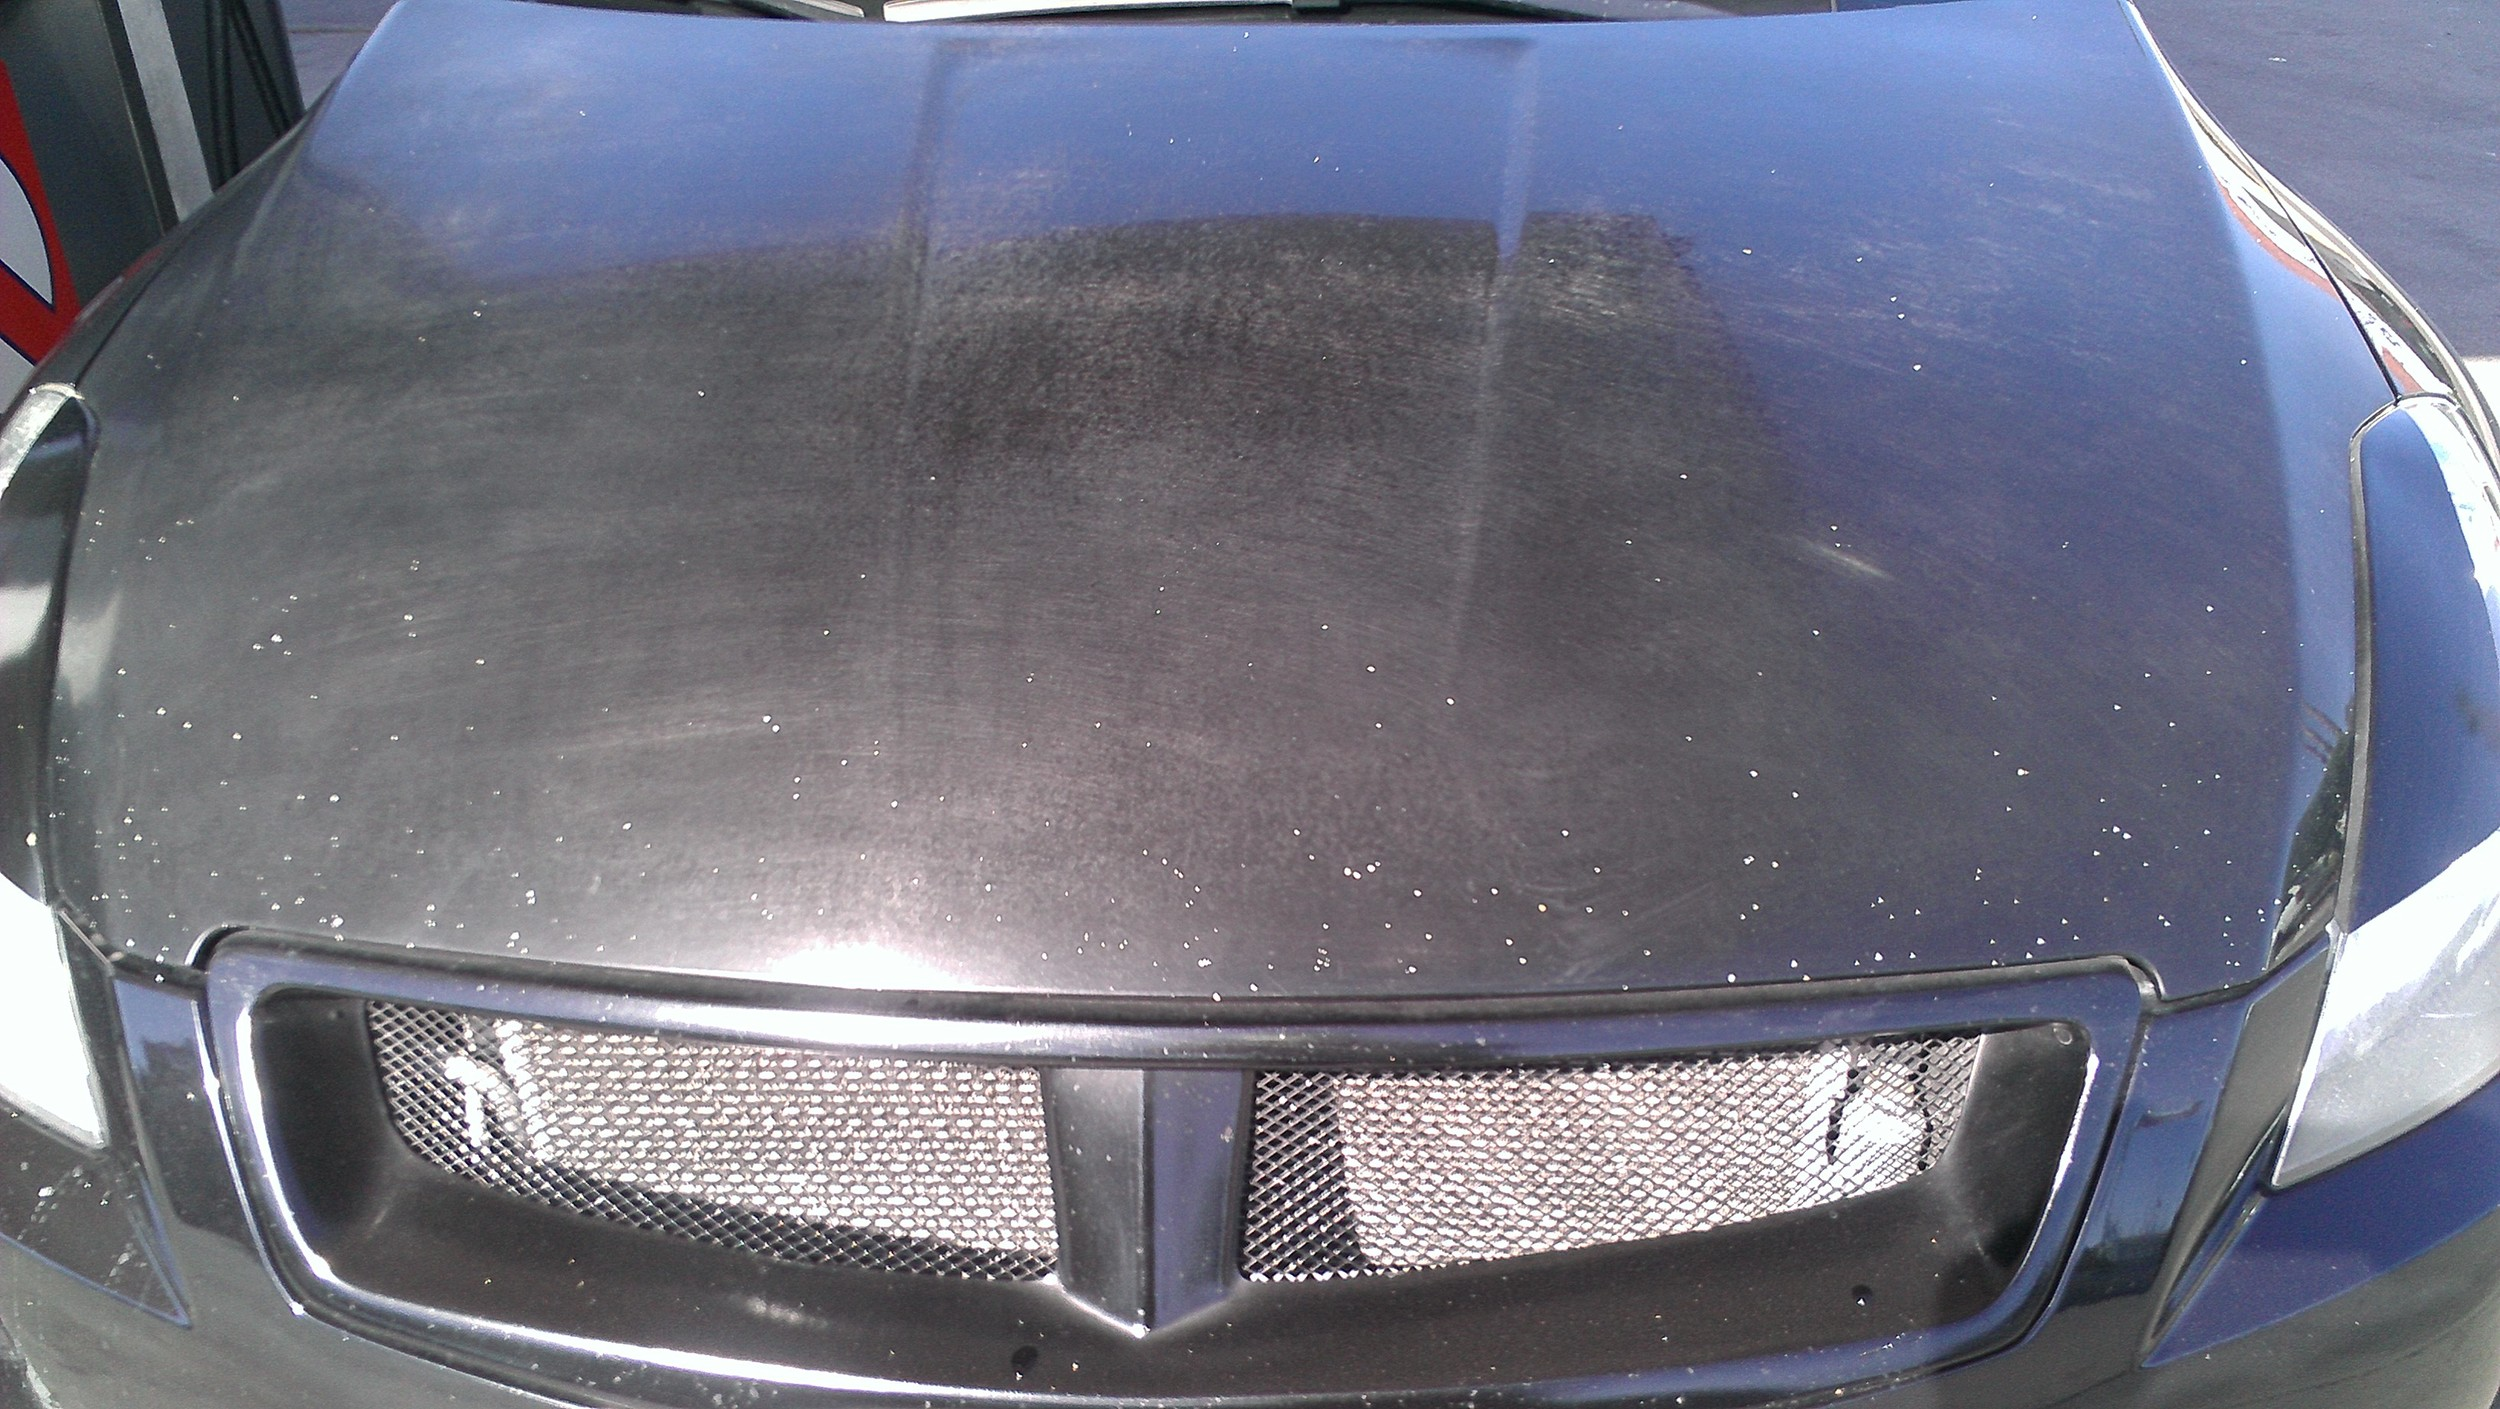 Clearcoat failure almost to the point of no return caused by improper washing techniques, lack of UV protection (lack of paint sealants/wax) and prolonged extreme exposure to the sun and heat.